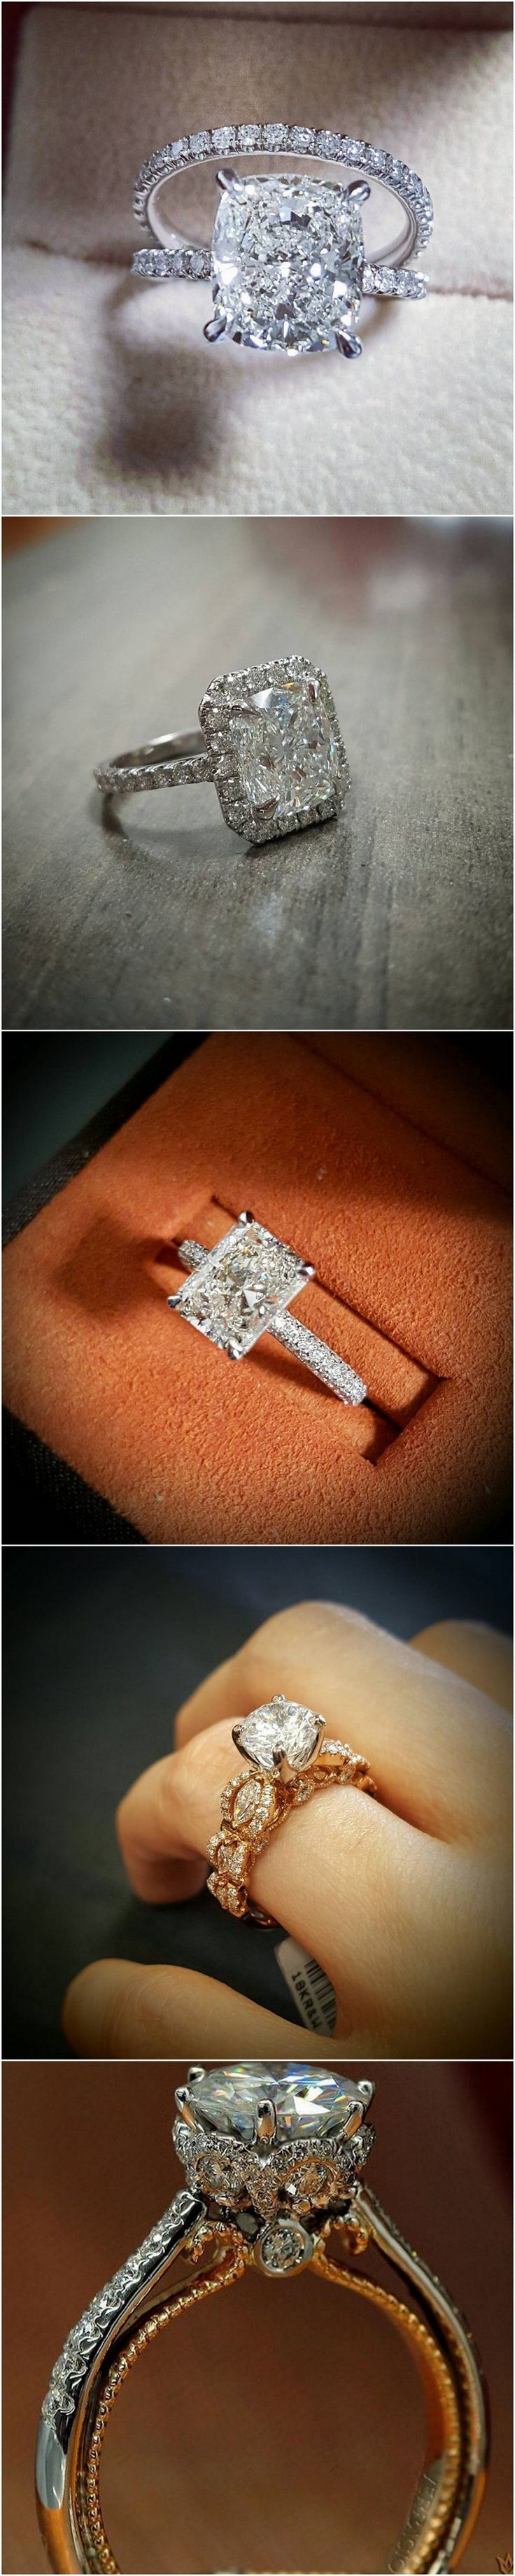 designs will top diamond ring pin that love quad rings wedding women